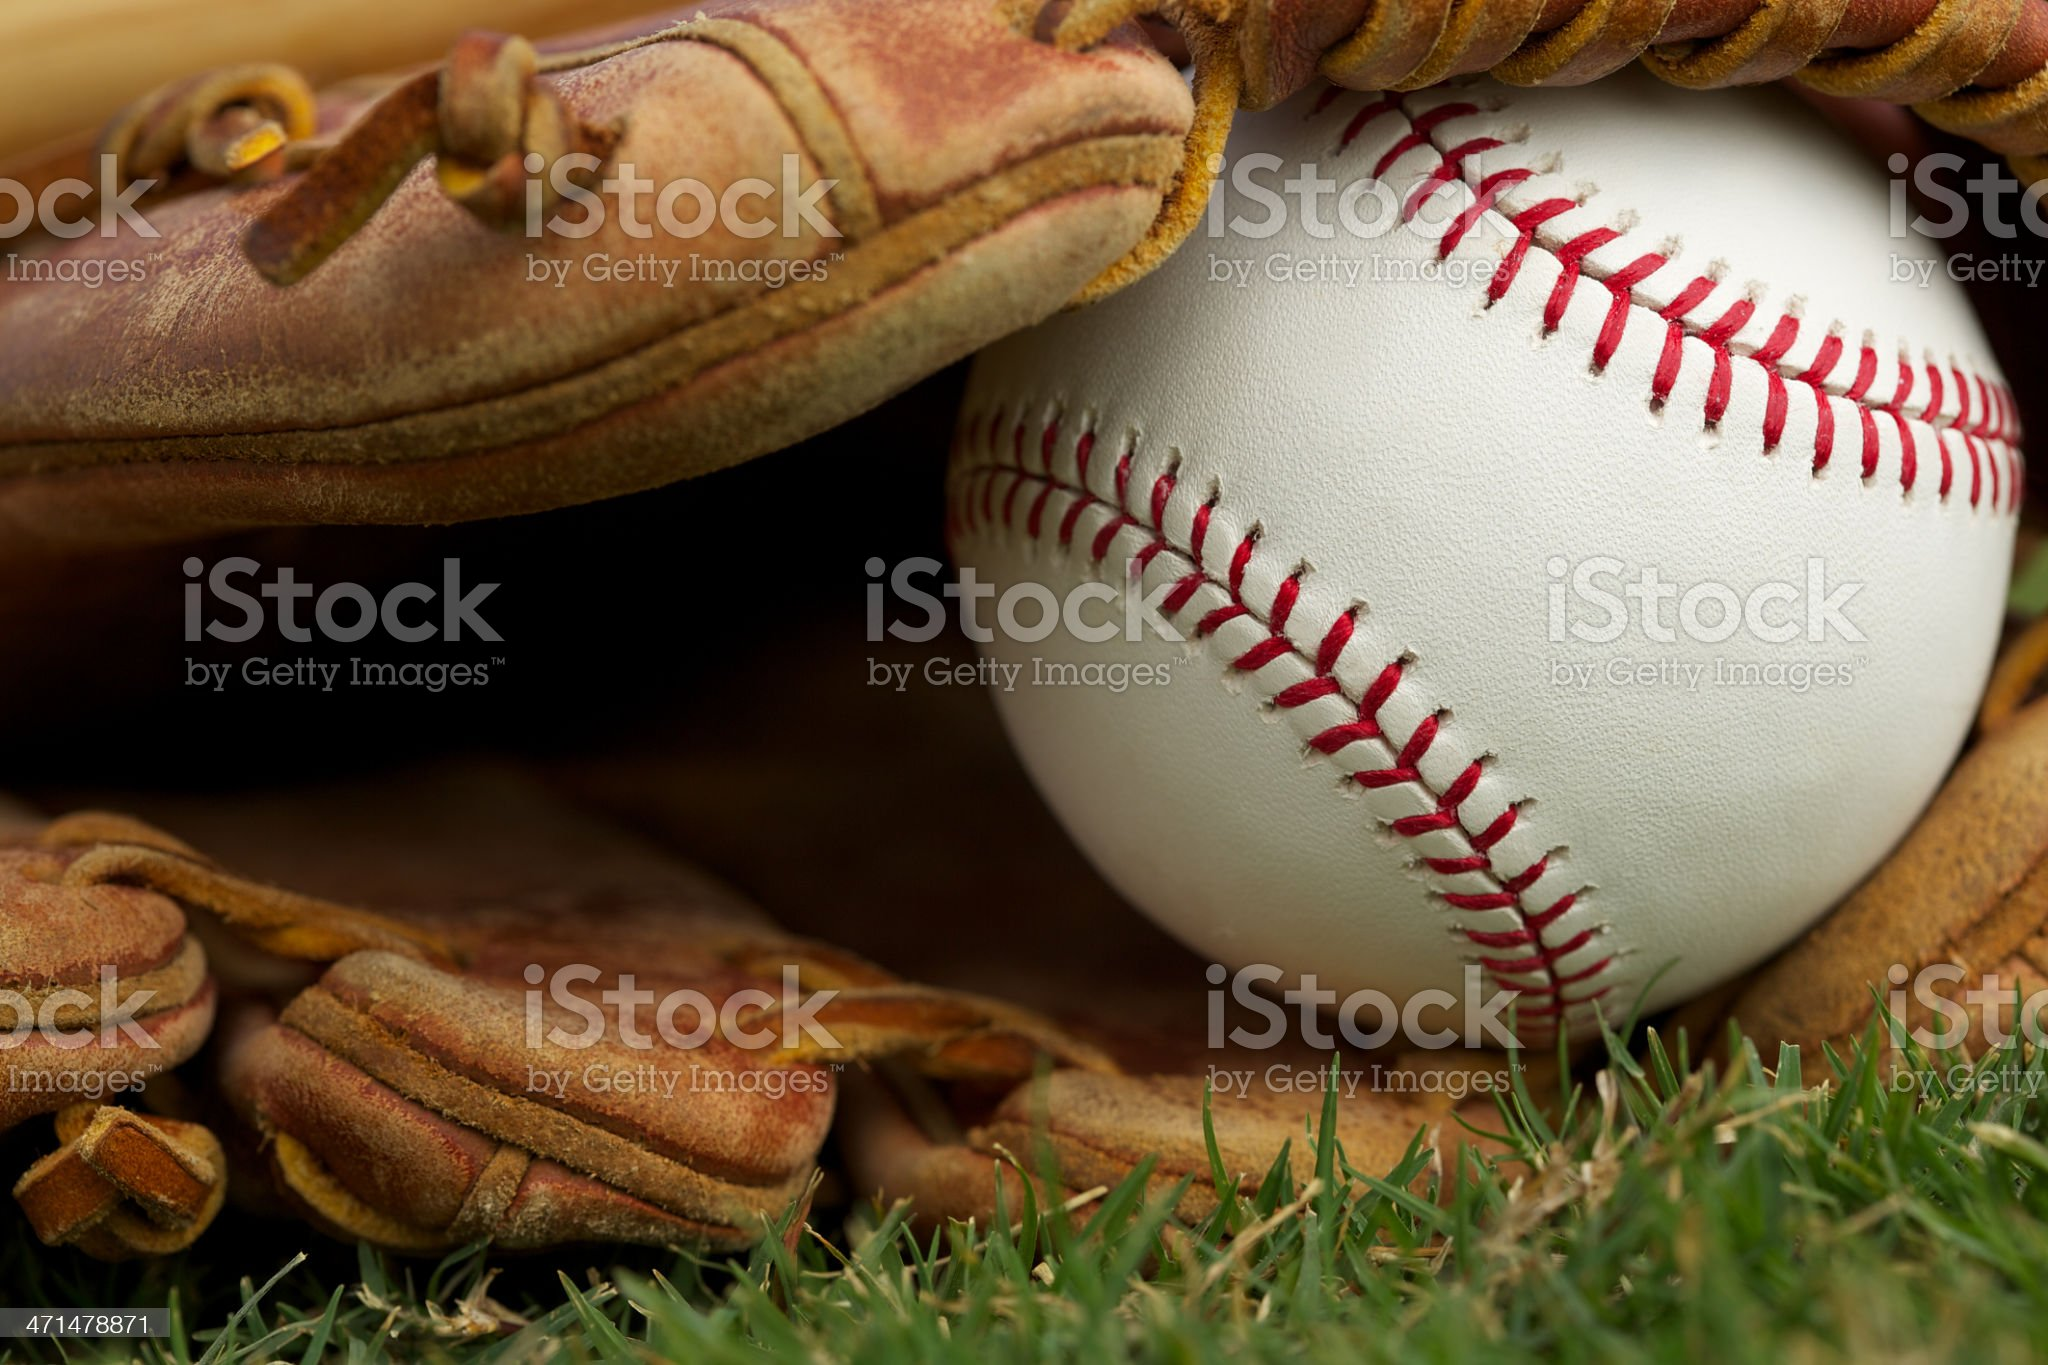 Baseball in a Glove Close Up royalty-free stock photo